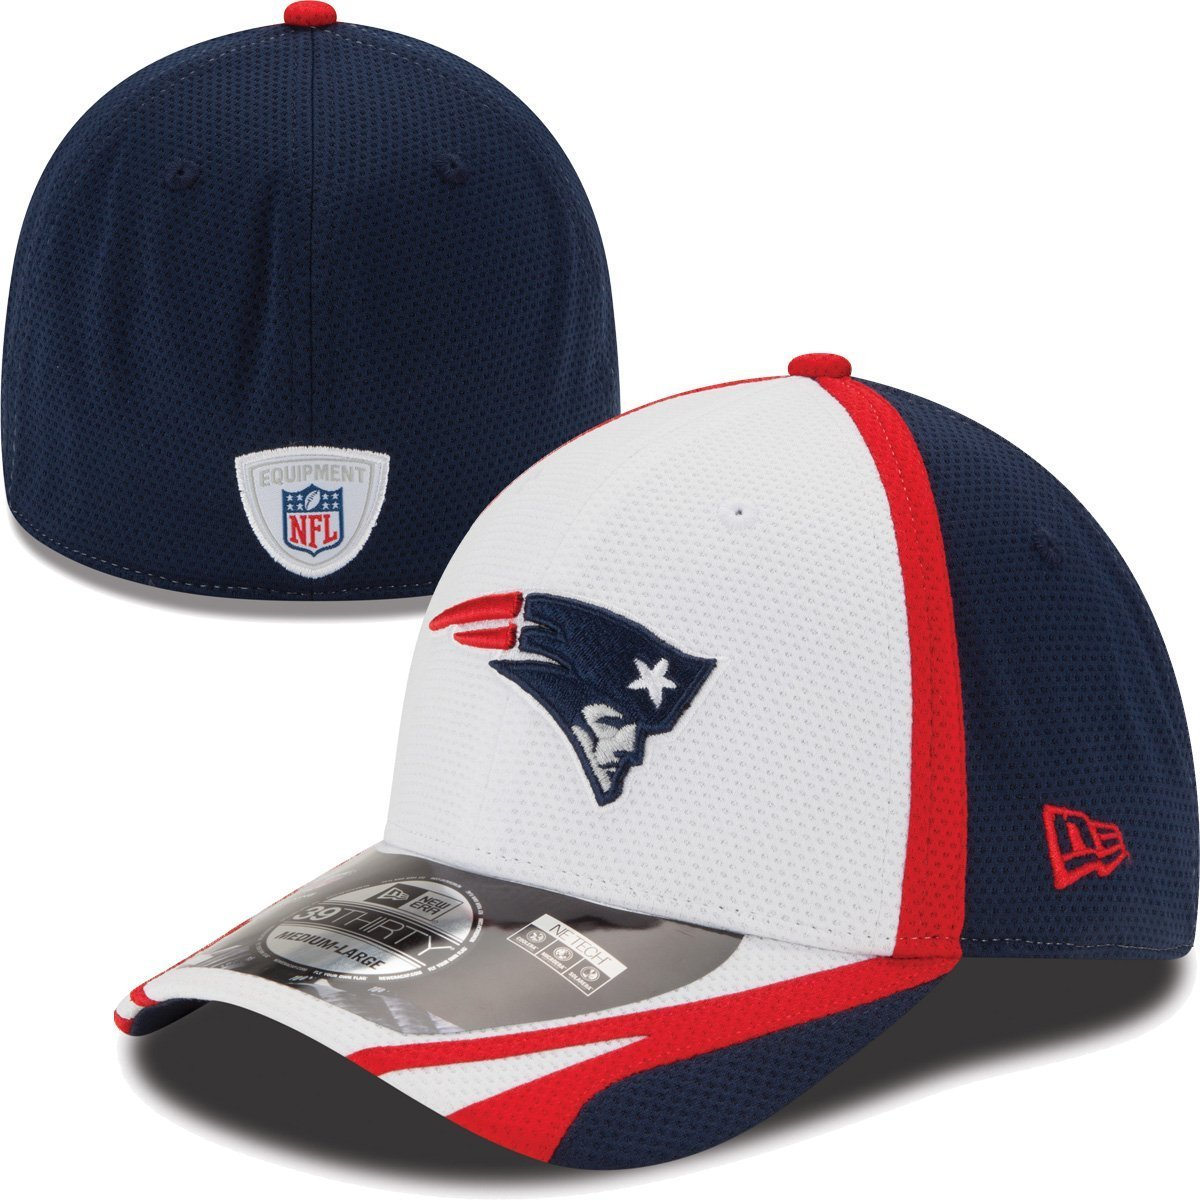 a83483a87 Amazon.com   New England Patriots New Era 39THIRTY 2014 Official Training  Flex Fit Hat   Sports   Outdoors